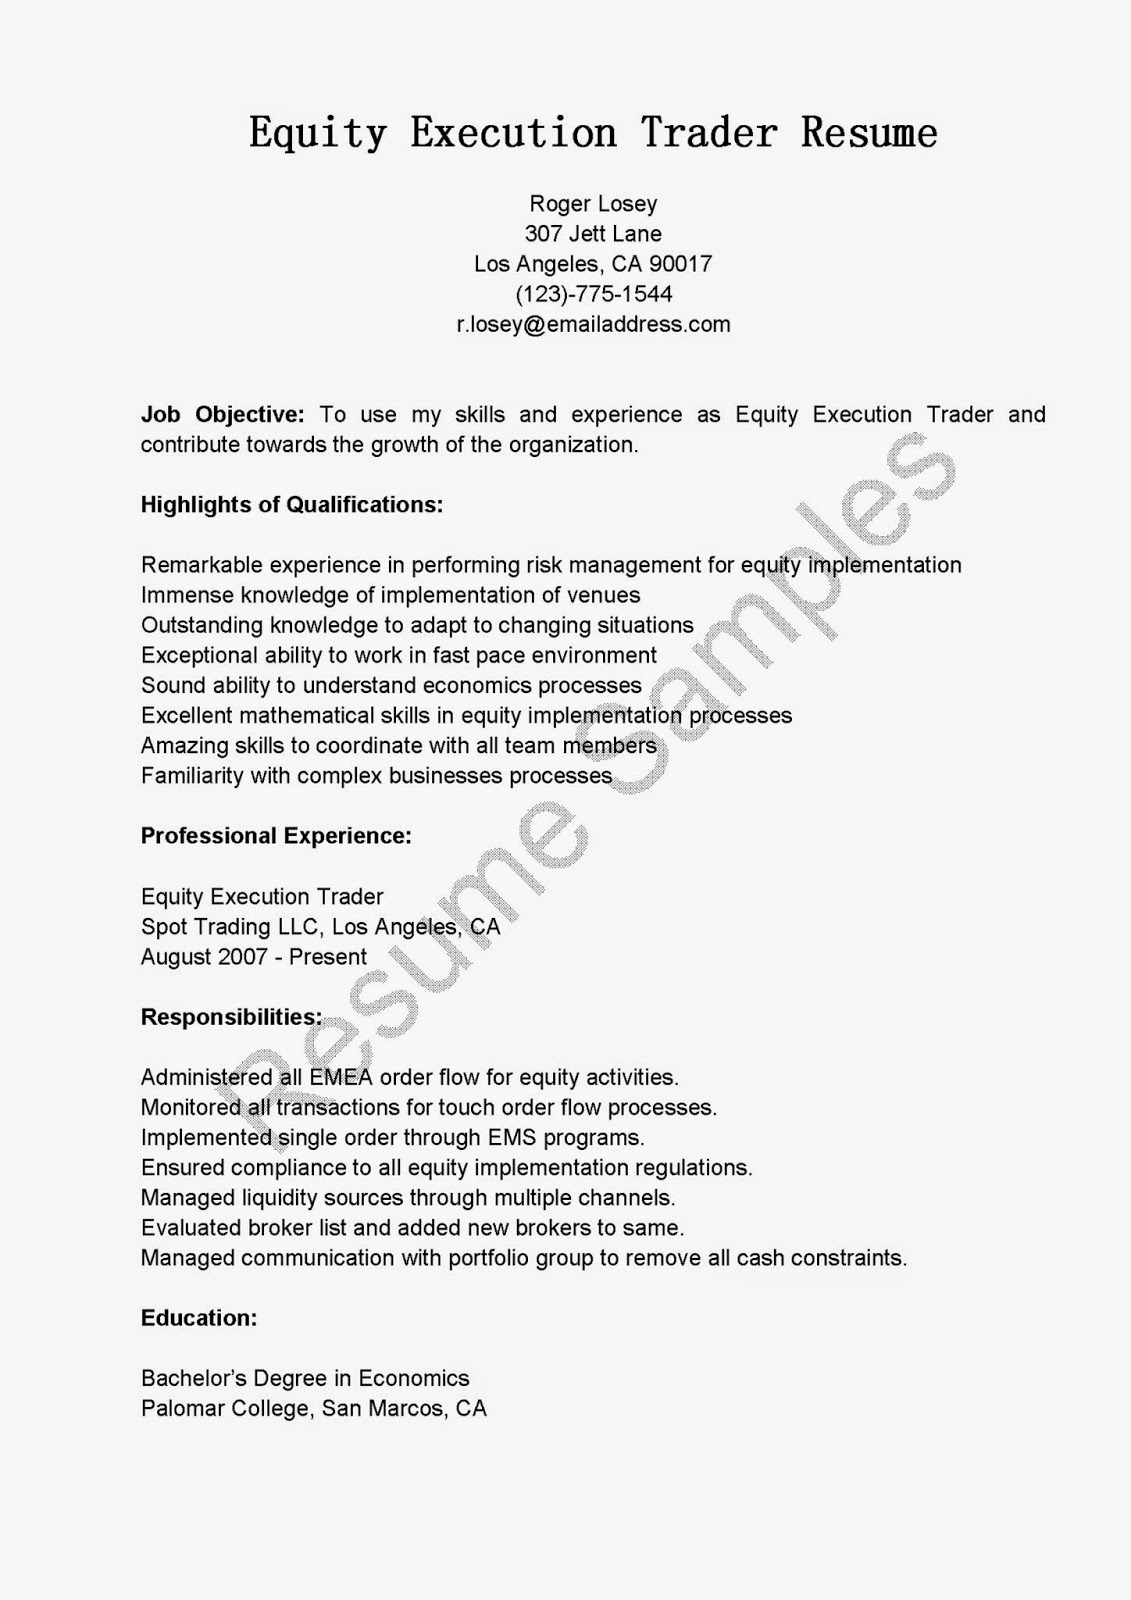 Securities Trader Cover Letter Buy Side Equity Trader Resume College Papers To Buy